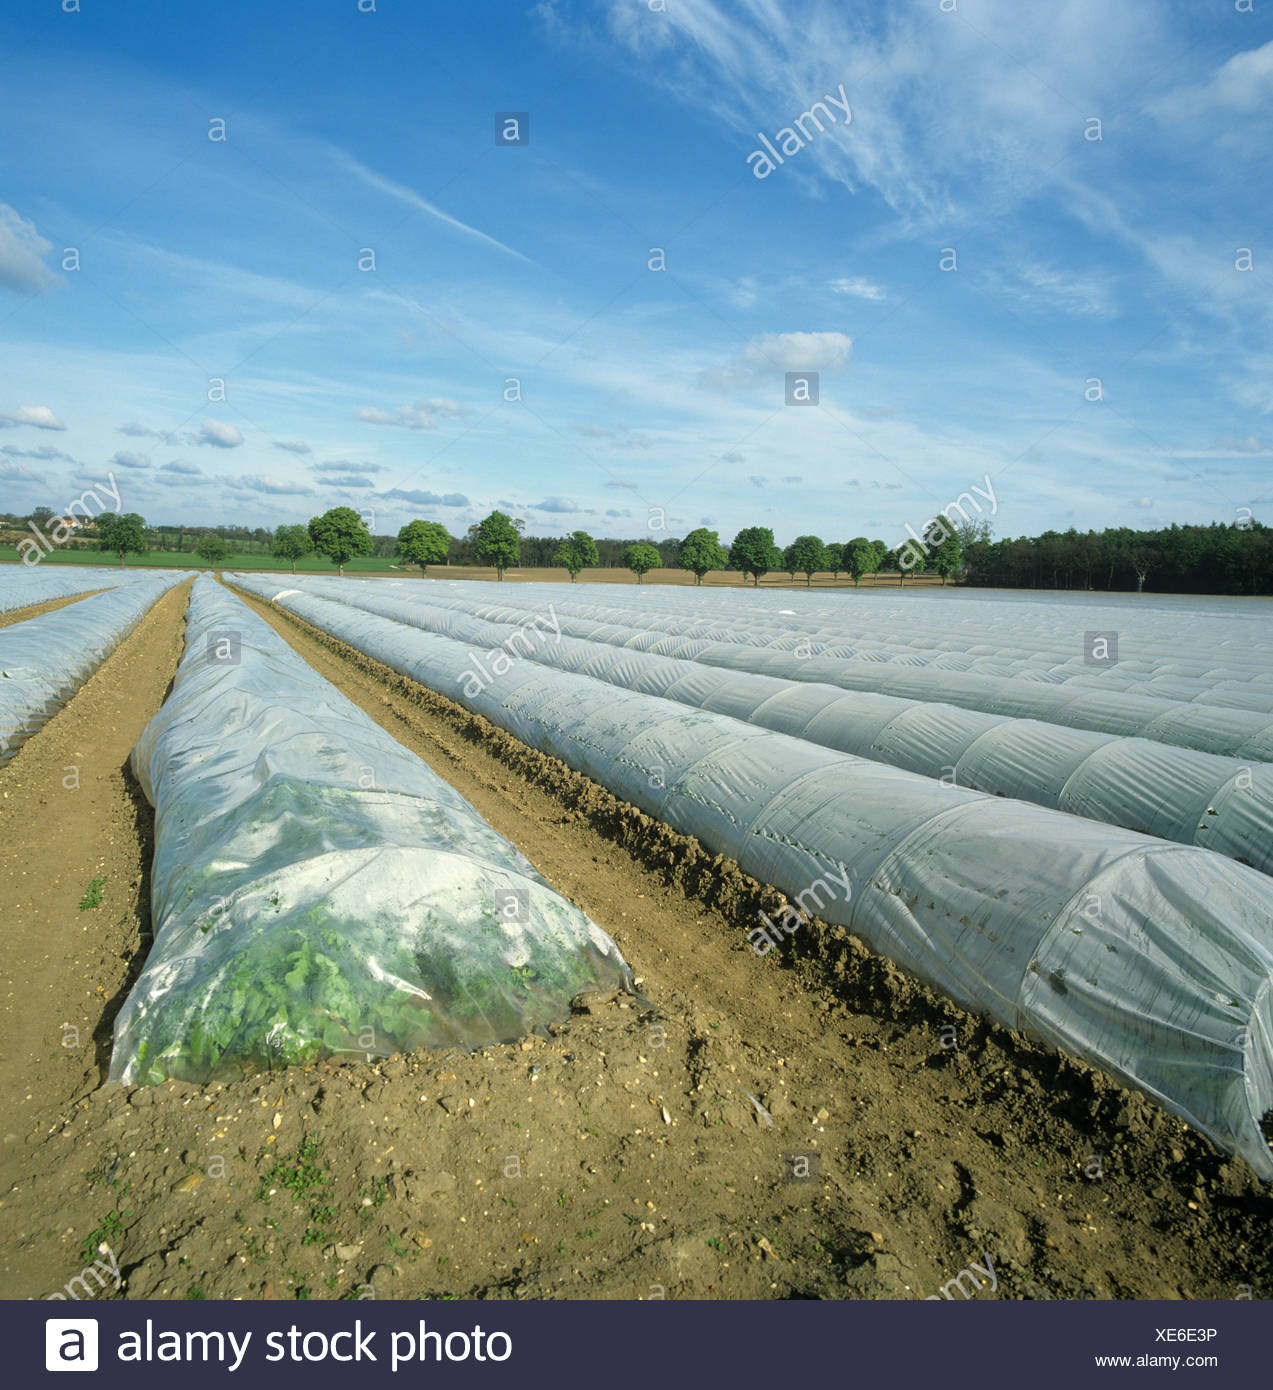 Polythene tunnels over market garden crops and distant line of windbreak trees Norfolk - Stock Image